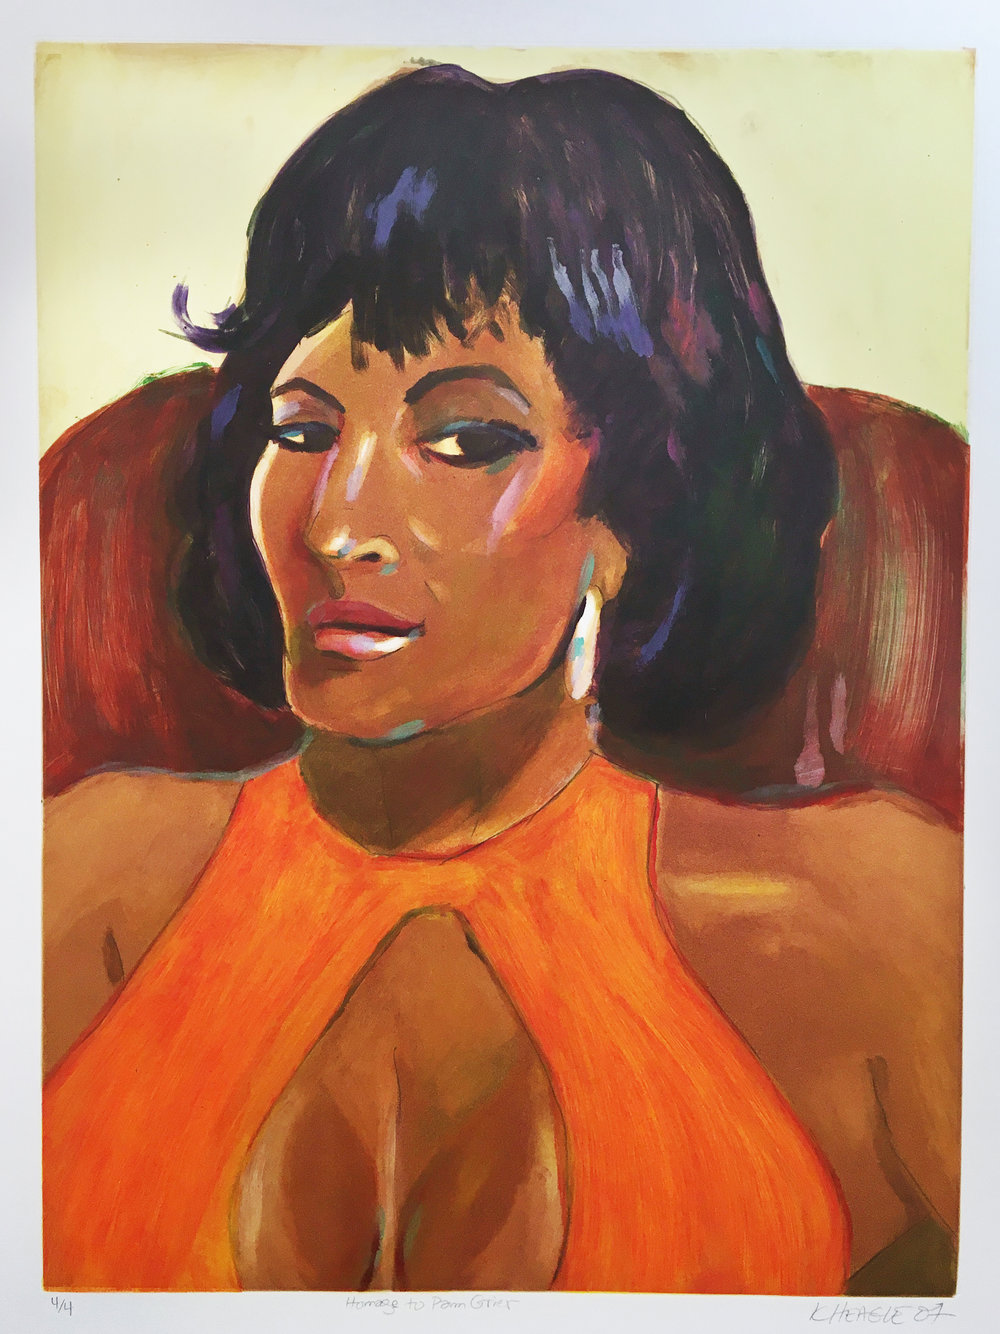 Homage to Pam Grier (IV) , 2007 Monotype Image size: 24 x 17.5 inches Paper size: 30 x 22 inches Series of 4